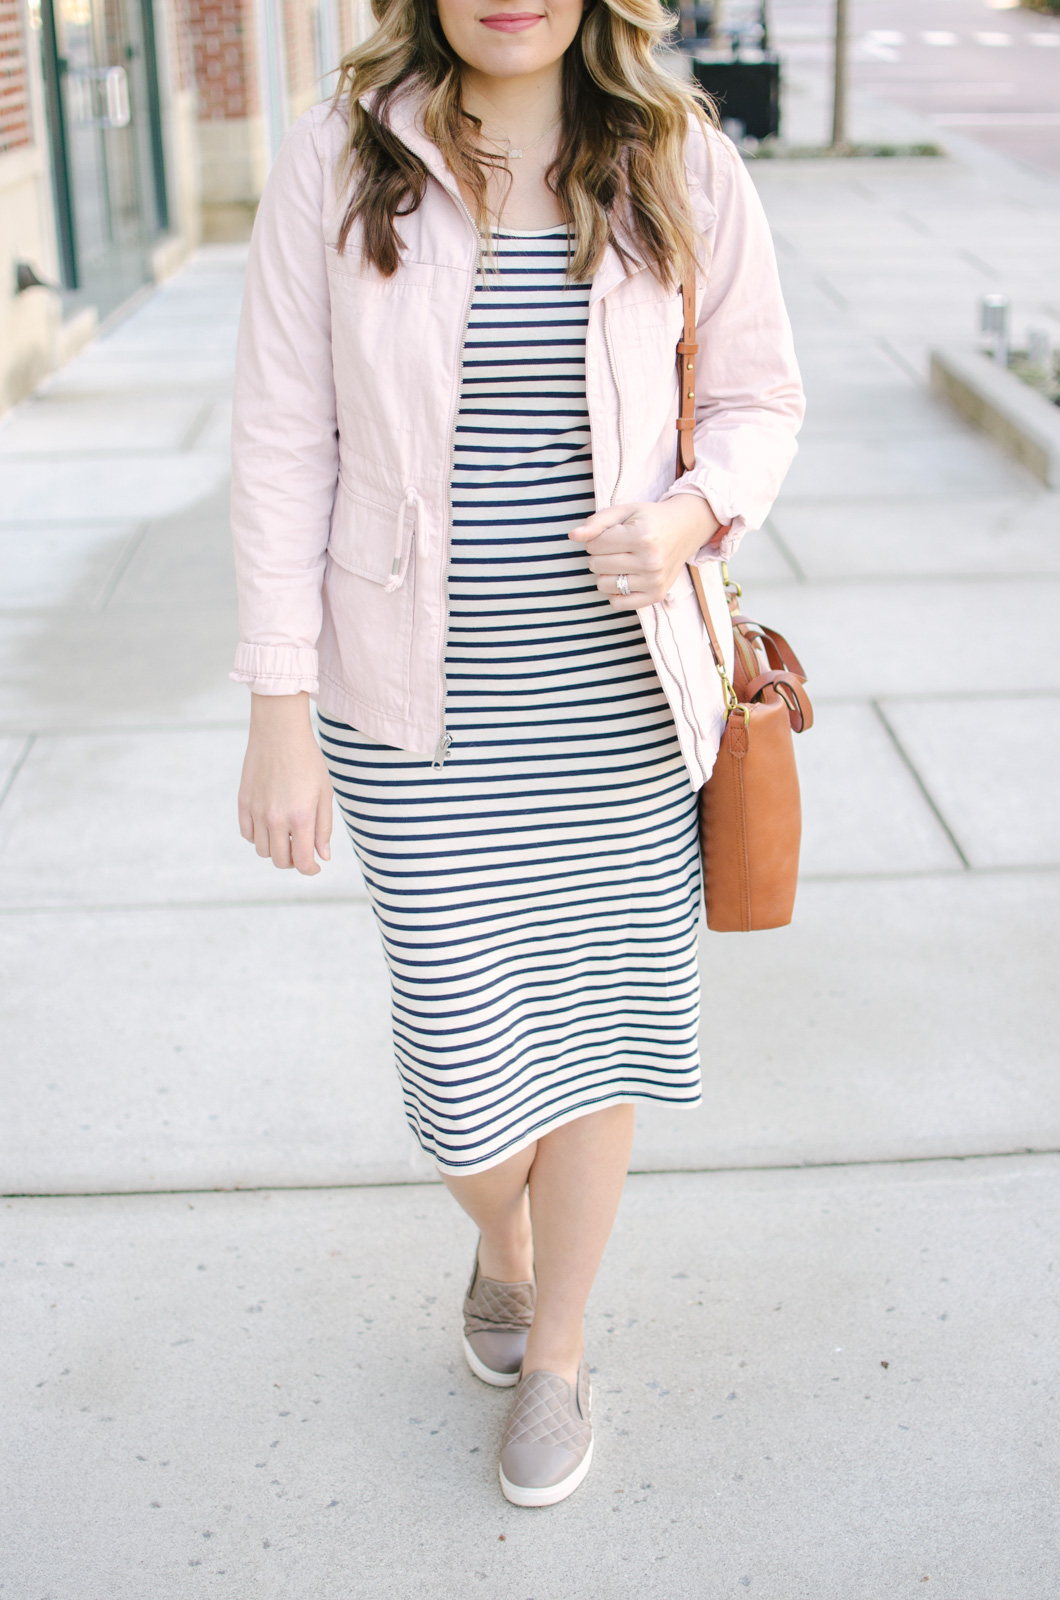 maternity style - two ways to wear a striped dress | Shop this look and see the other striped dress outfit at bylaurenm.com!